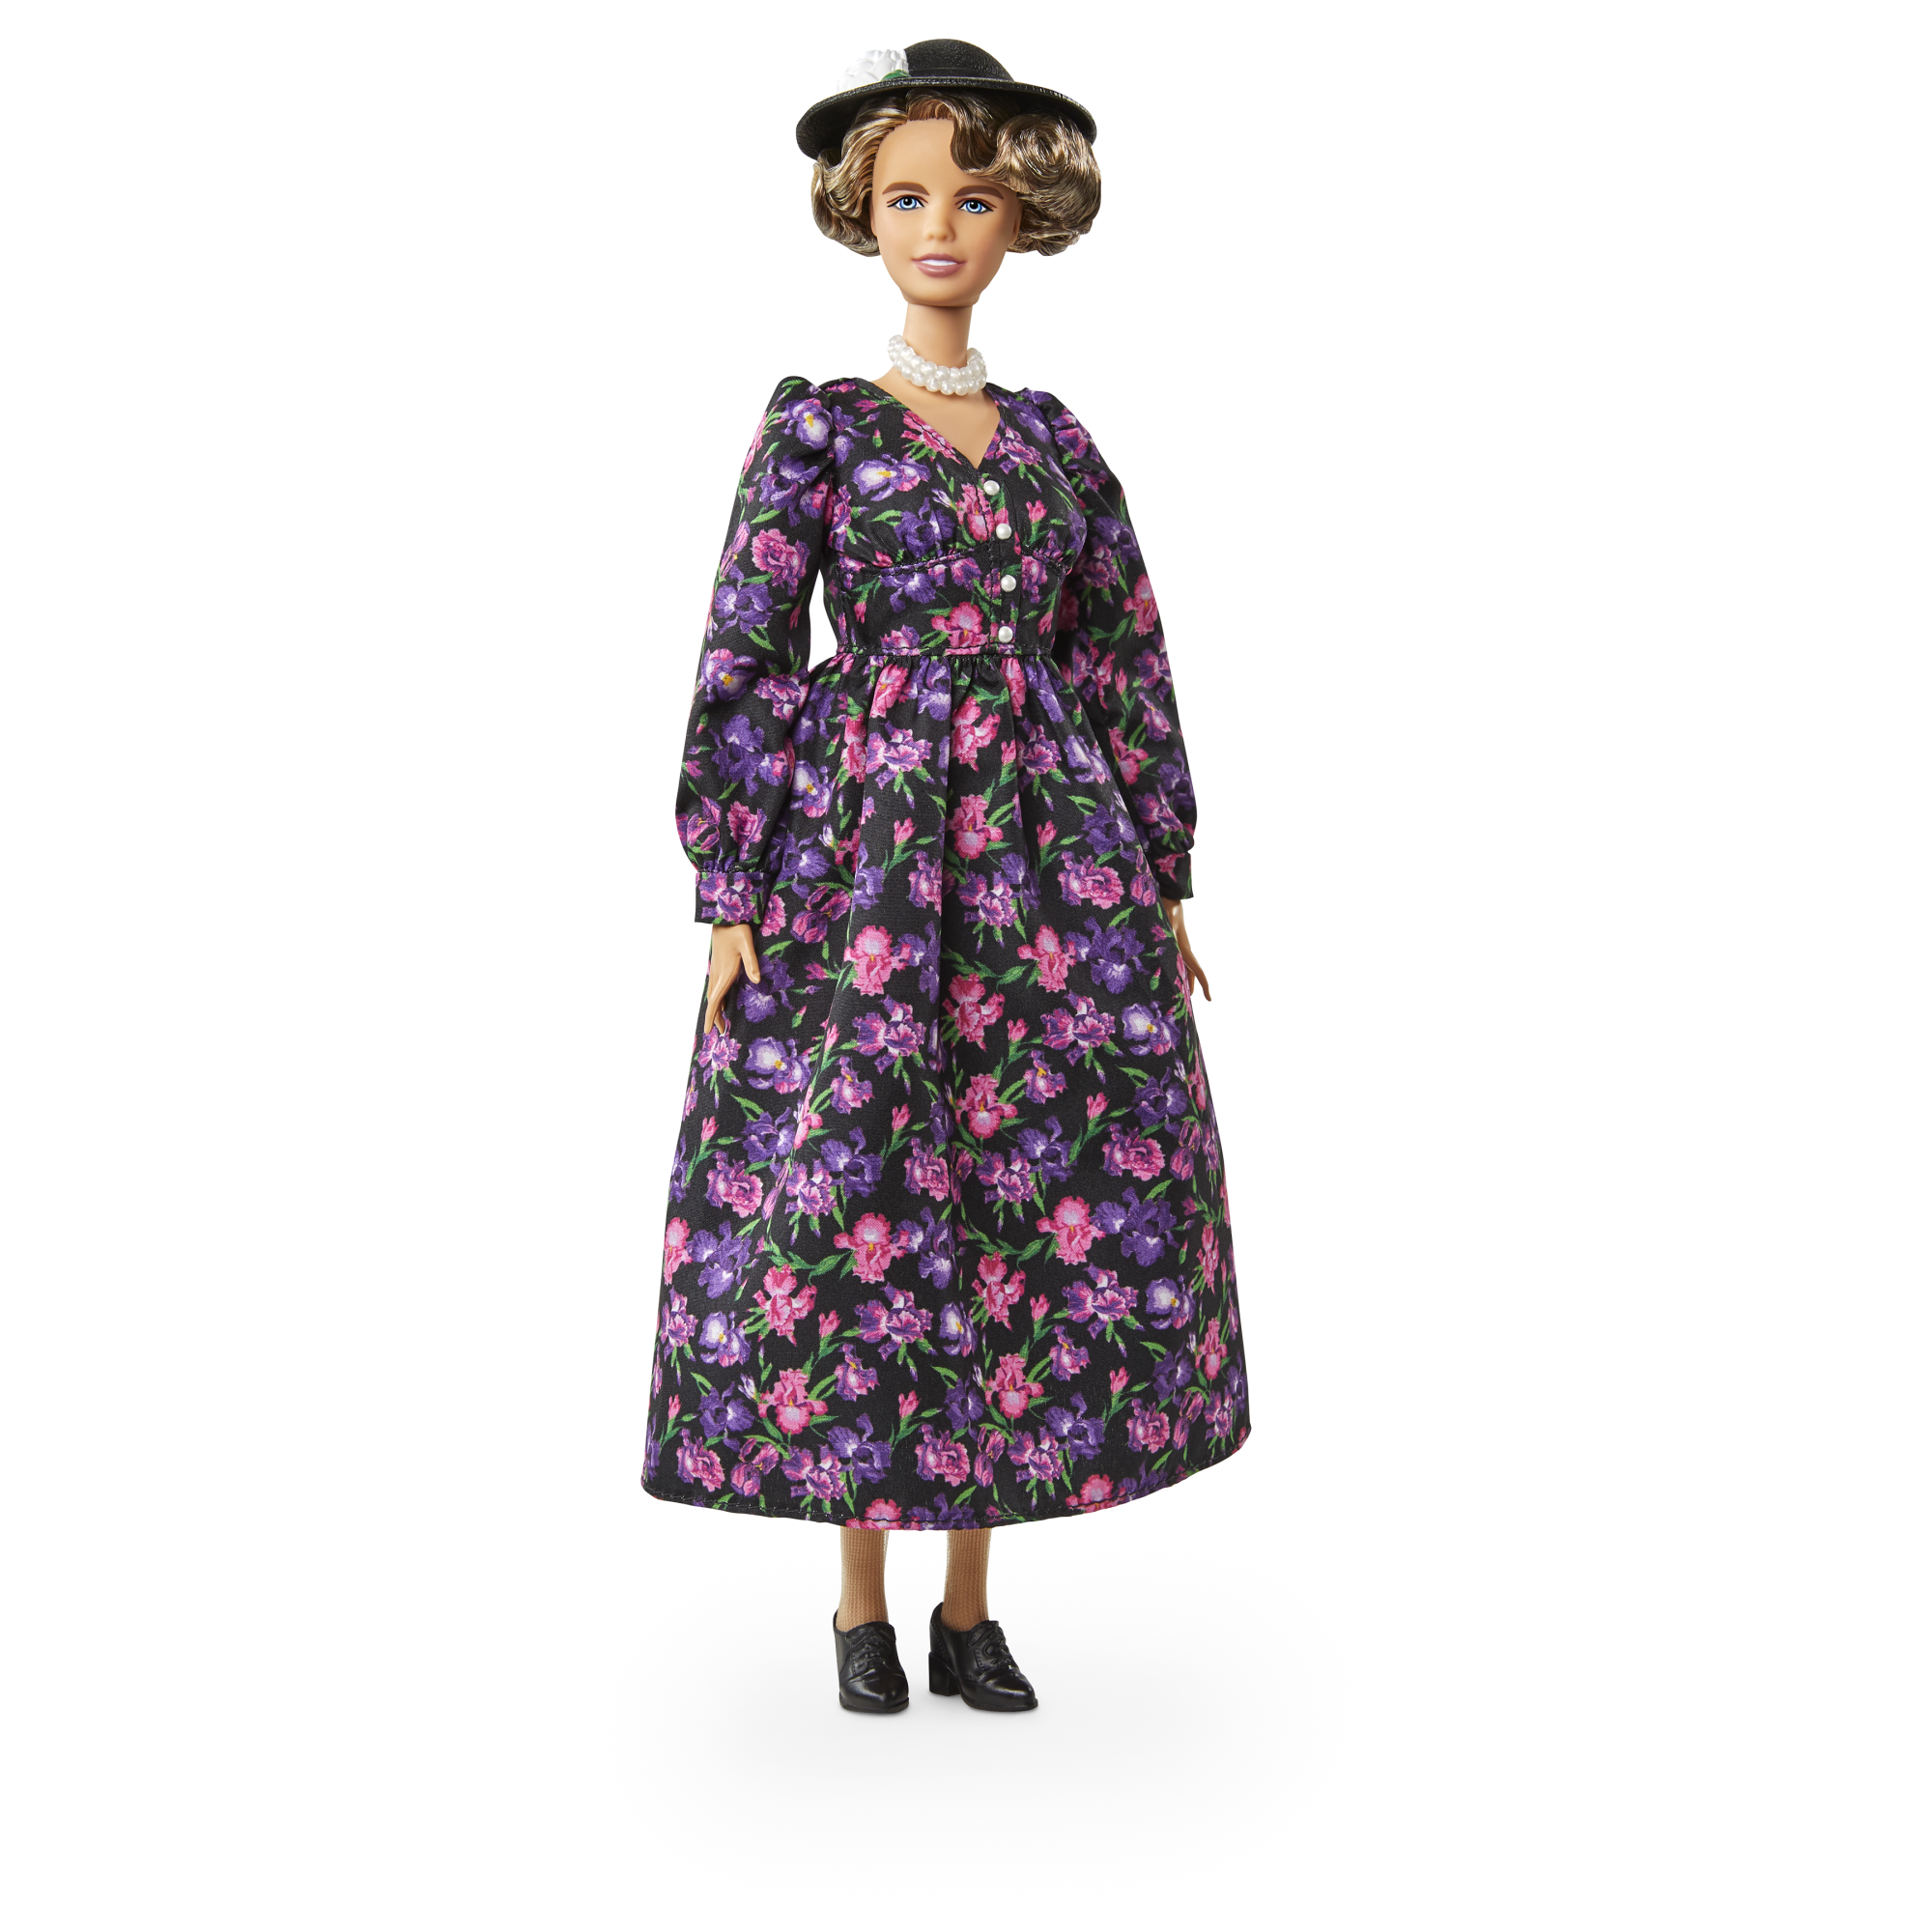 New Eleanor Roosevelt Barbie thrills historians: 'Any way you can capture children's attention in 2021' - Yahoo Lifestyle